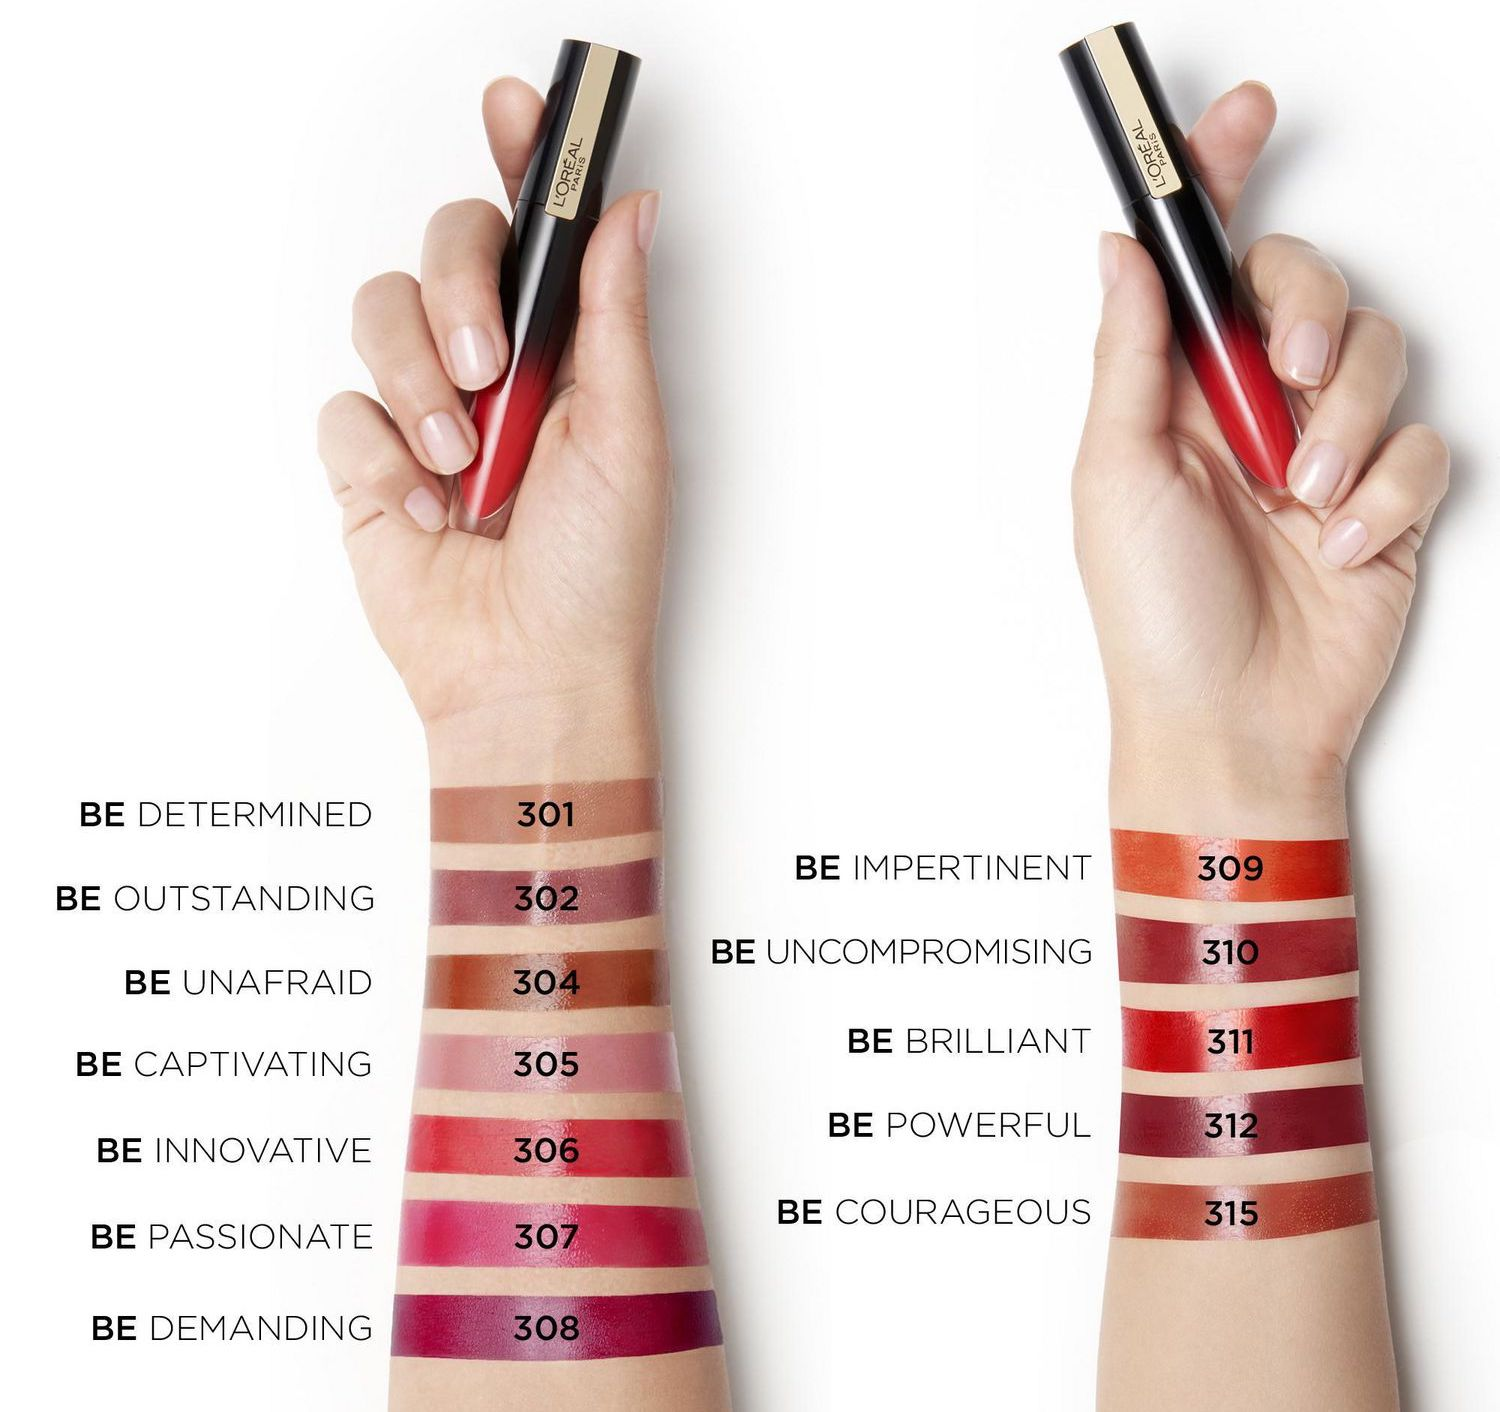 L'Oreal Brilliant Signature Shiny Lip Stains swatches